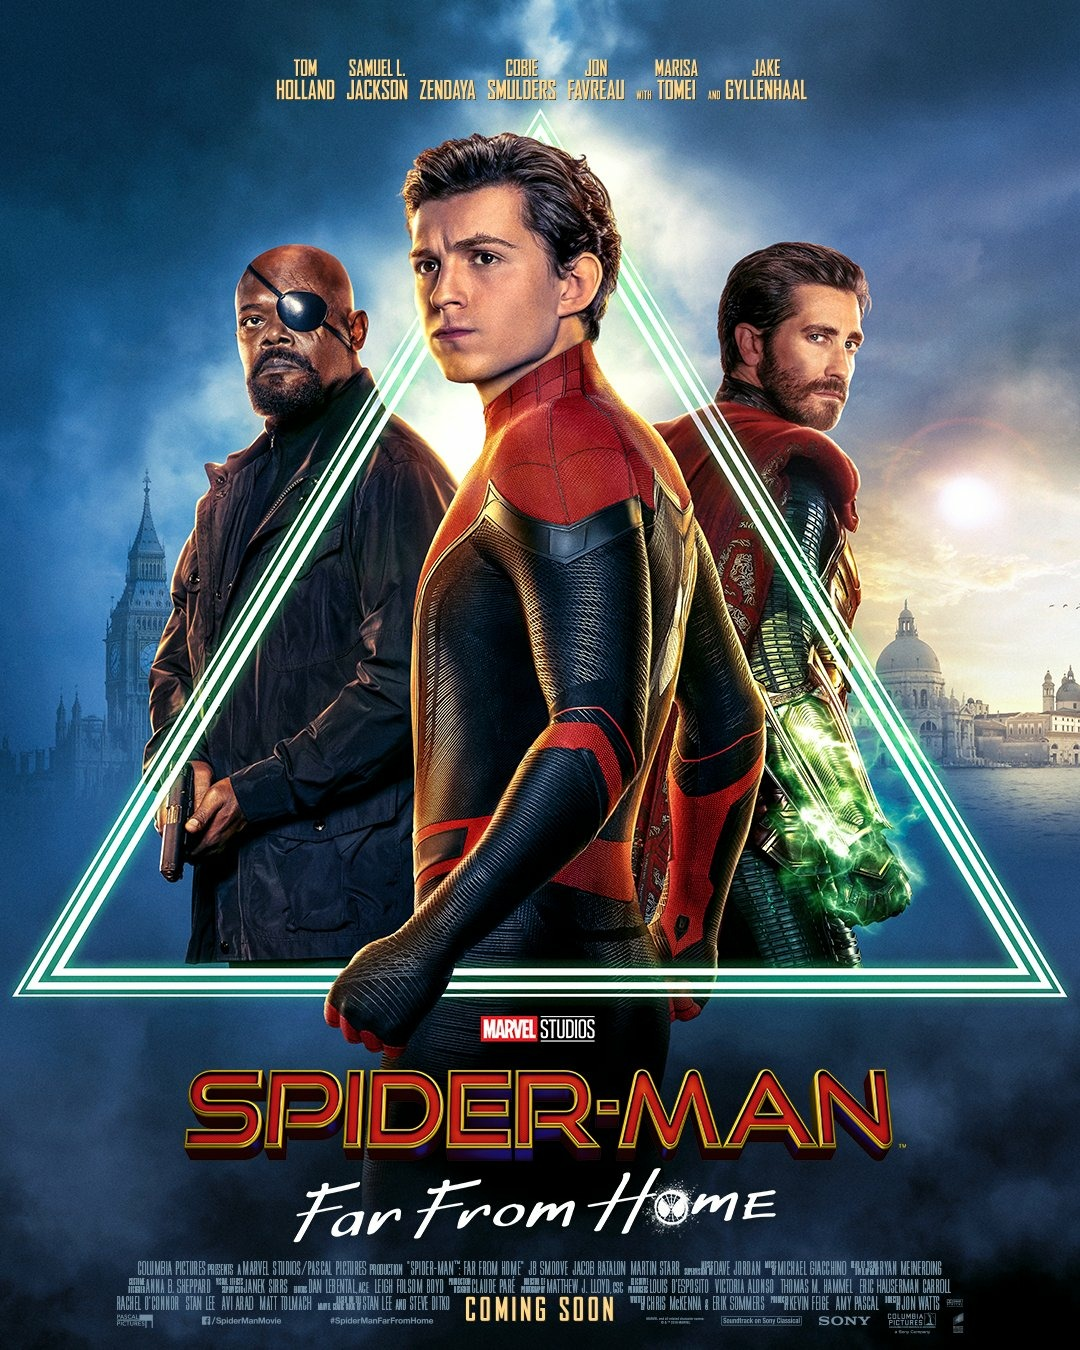 Spider Man Far From Home (2019) English  HDrip – 1080p – 720p – KorSub